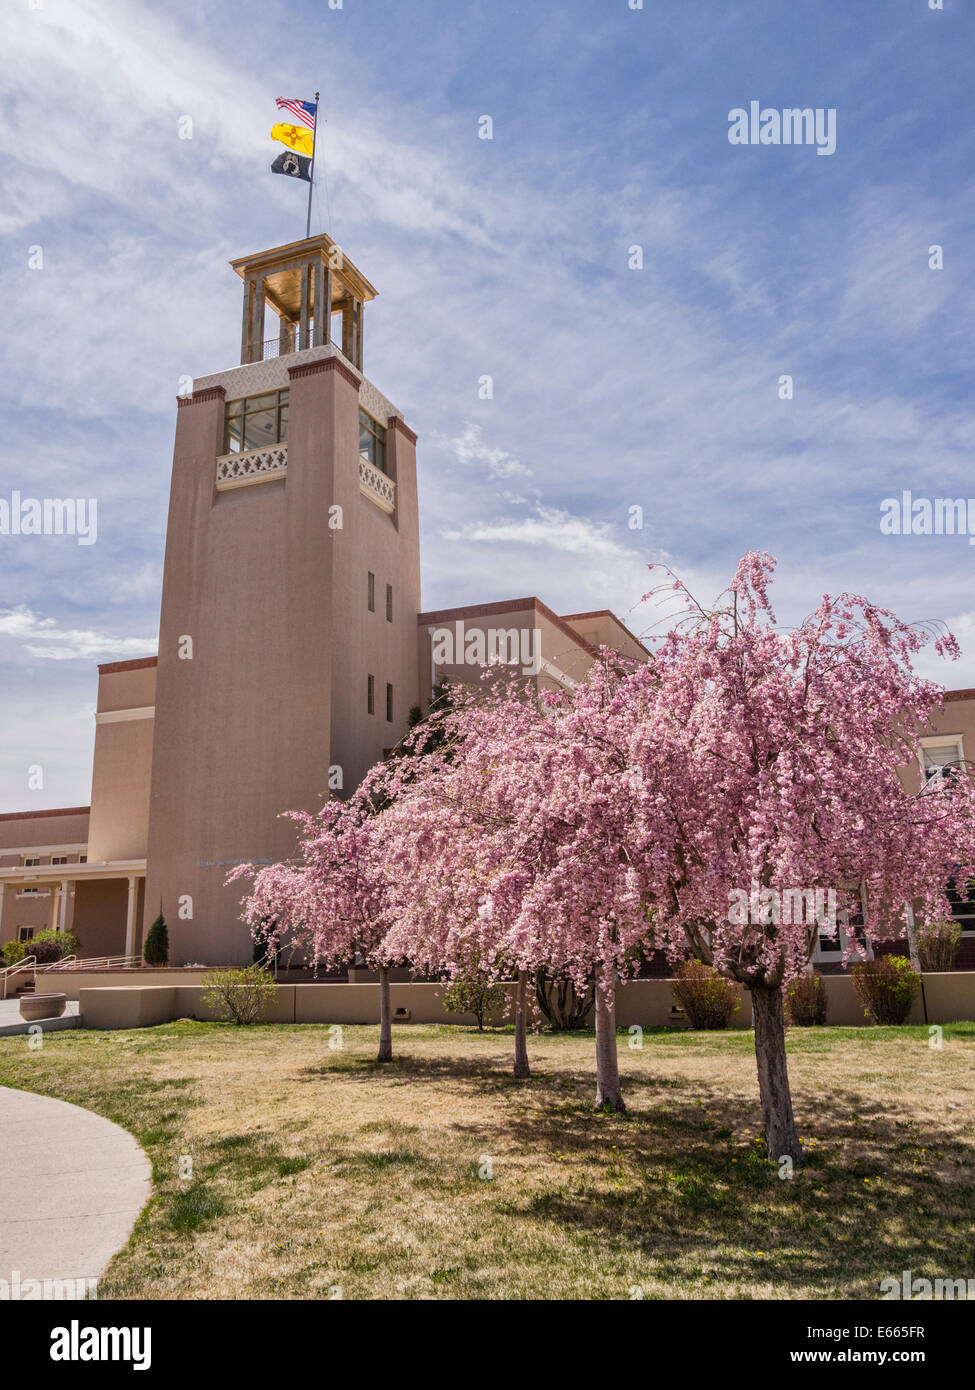 Cherry trees in blossom and the tower of the Bataan Memorial Building, a New Mexico State office complex in Santa - Stock Image